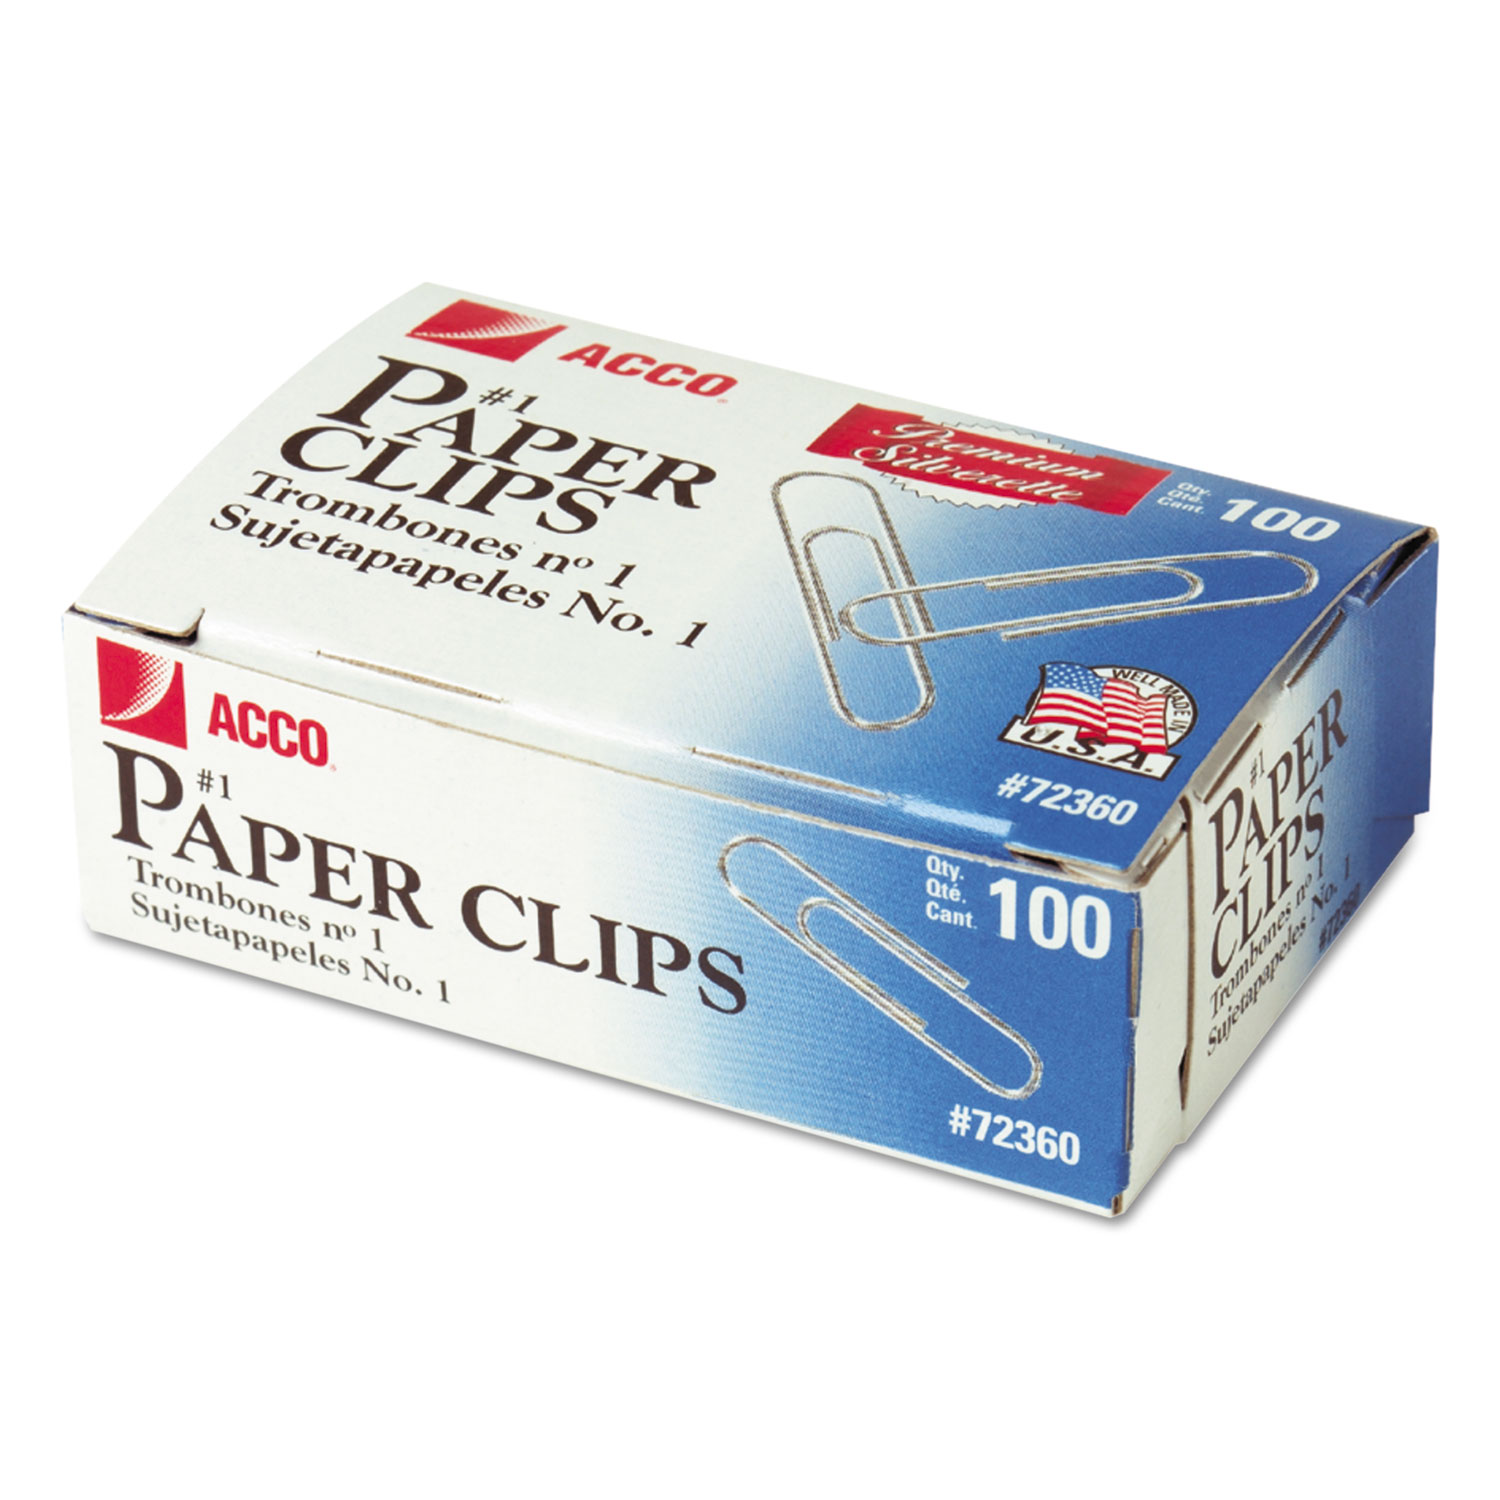 Paper Clips, Small (No. 1), Silver, 100/Box, 10 Boxes/Pack ACC72360